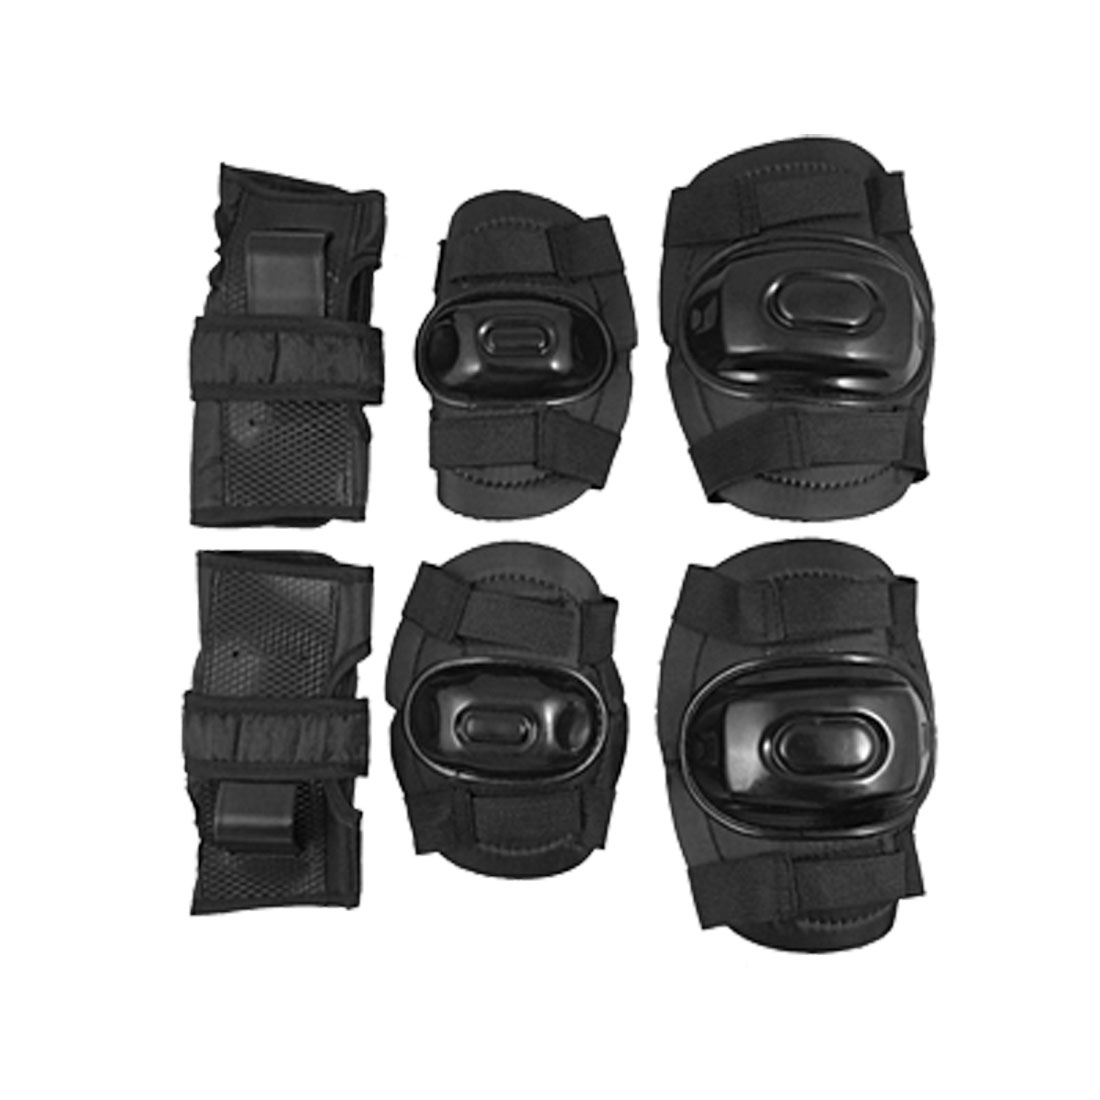 Kids 3 Sets Black Sports Support for Ellbow Wrist Knee